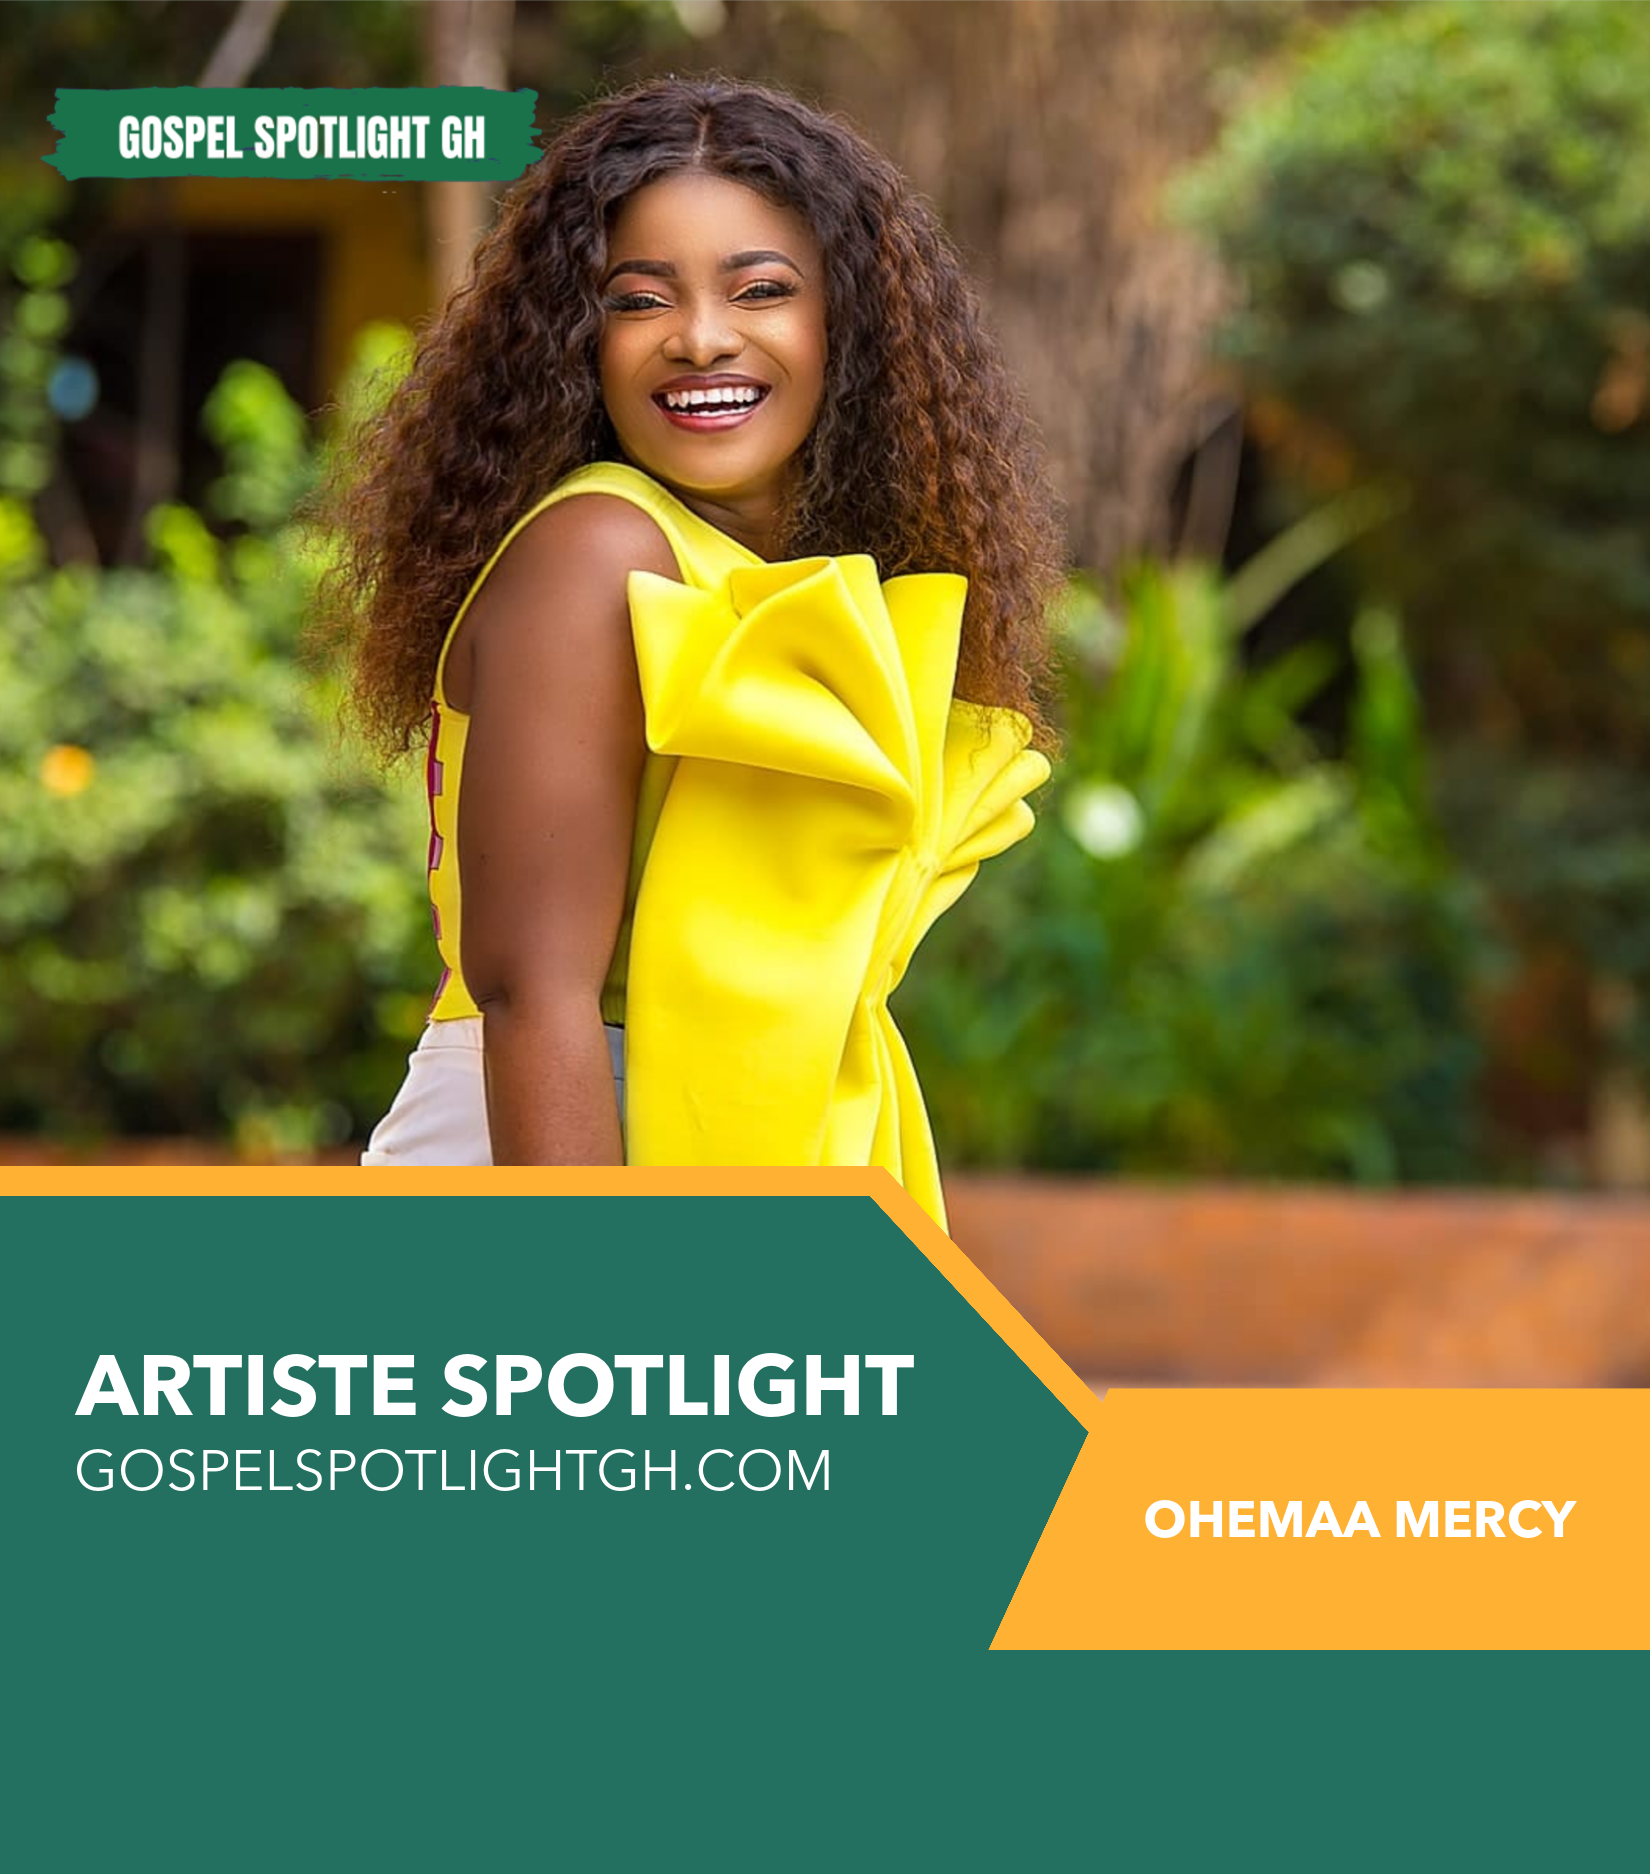 ARTIST SPOTLIGHT: Ohemaa Mercy Lifestyle, Ministry, Awards & Recognition